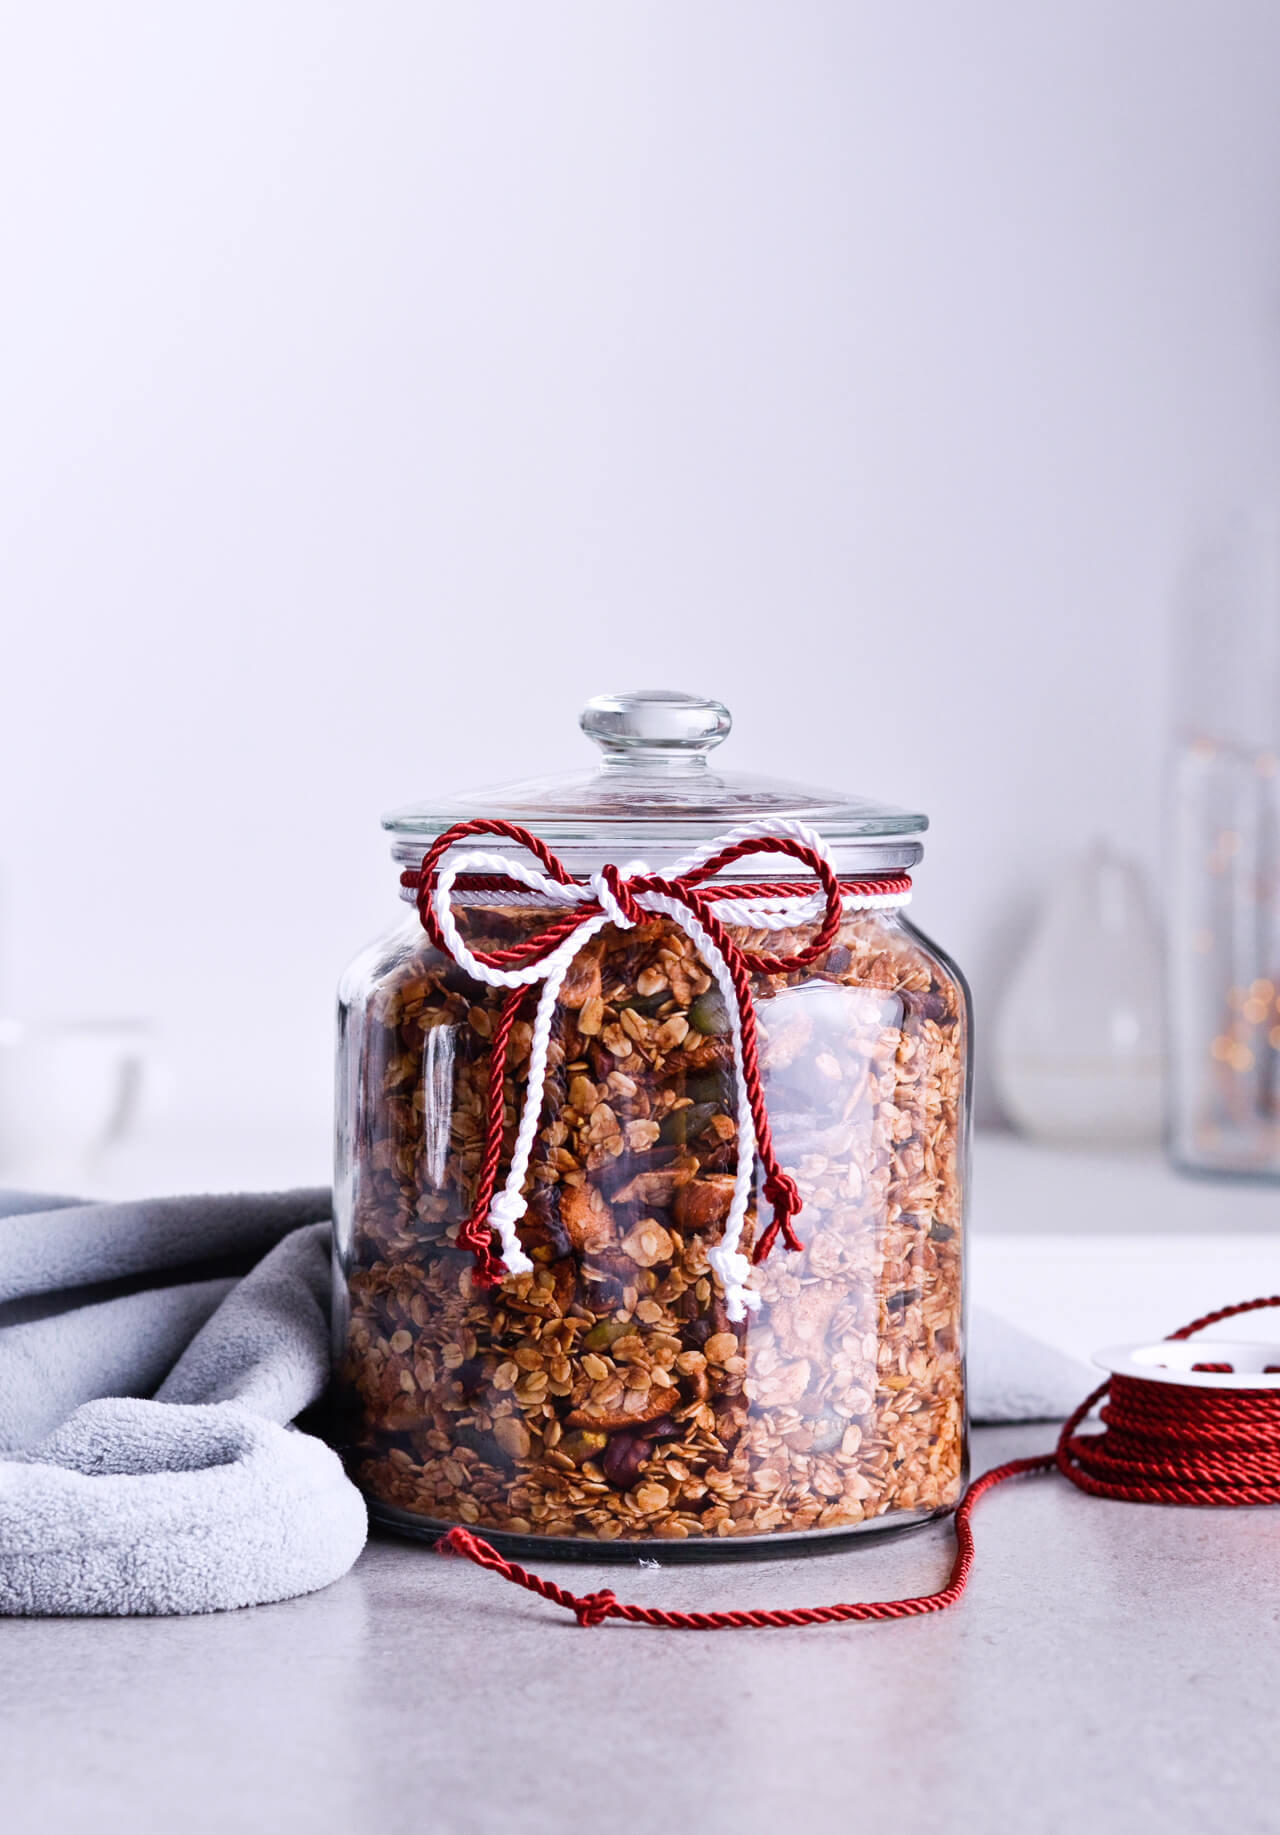 Recipe for Cinnamon apple pistachio soft granola, packed with hazelnuts, sunflower seeds, maple syrup and honey, it is a real treat that makes breakfast wonderful. A jar of granola can also be a great homemade gift. | @mitzyathome sugarsalted.com